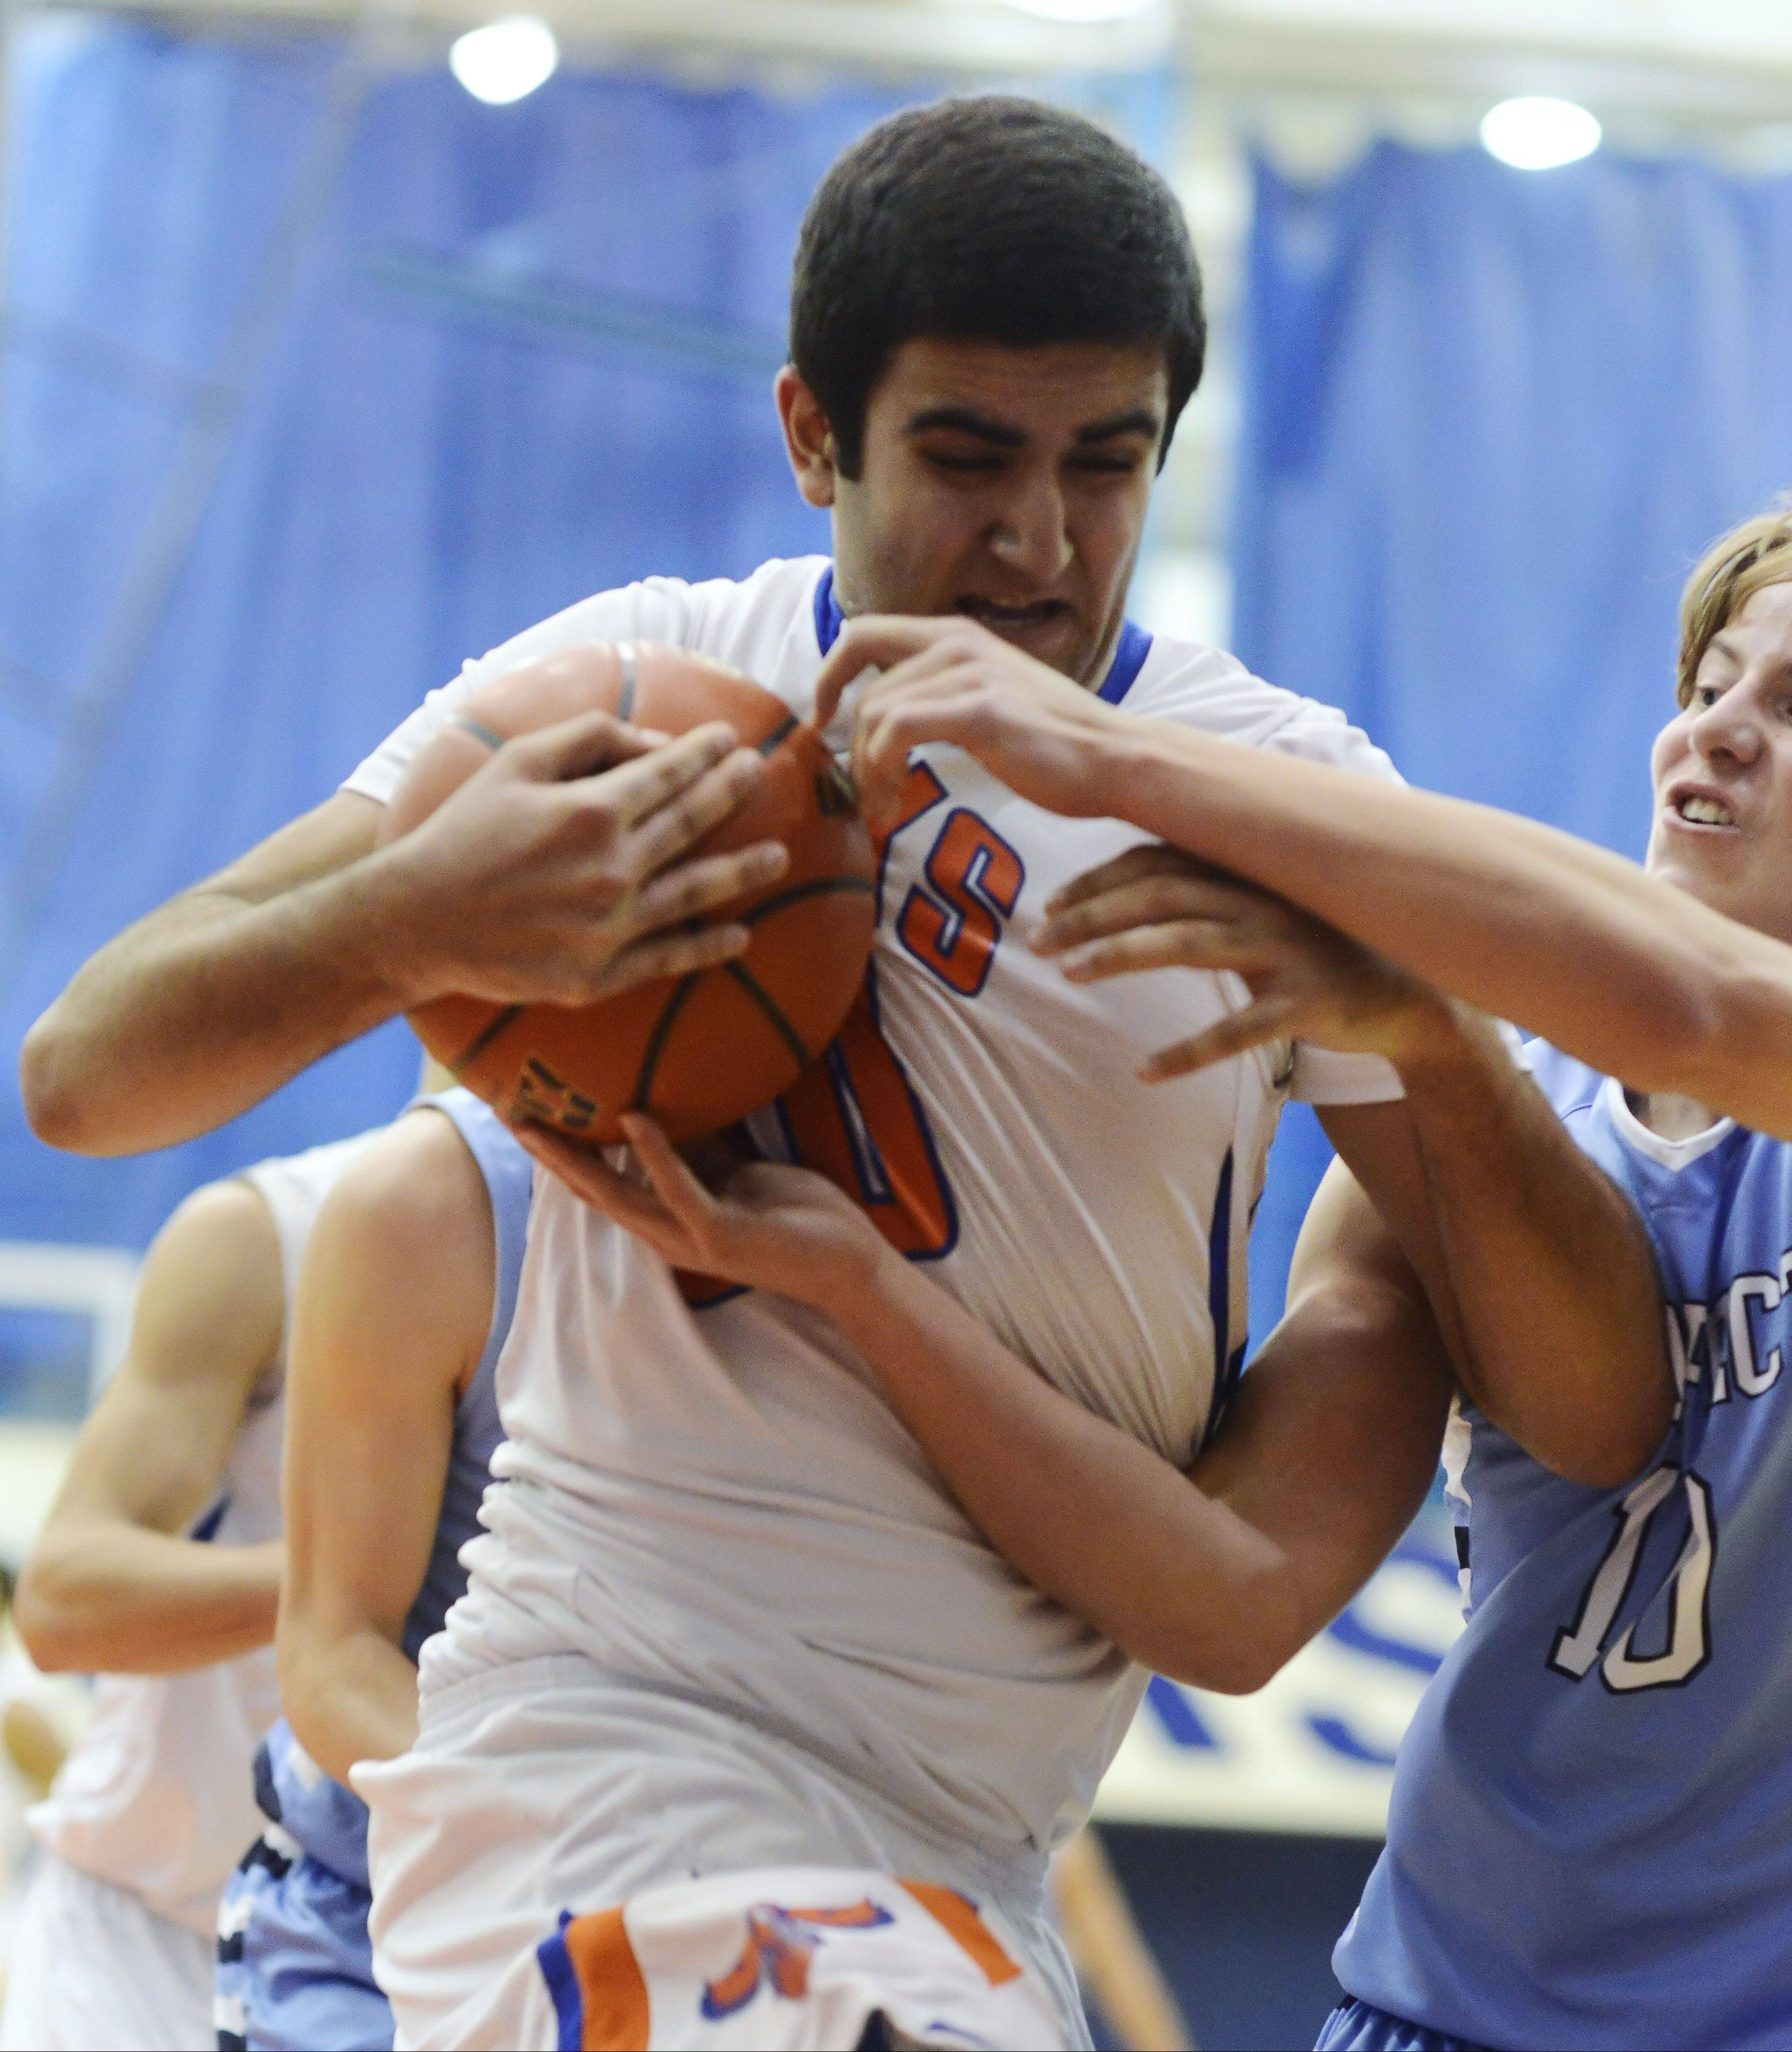 After grabbing a rebound, Hoffman Estates' Joe Biko tries to keep the ball from the grasp of Prospect's Nick Lazarz during Tuesday's game.